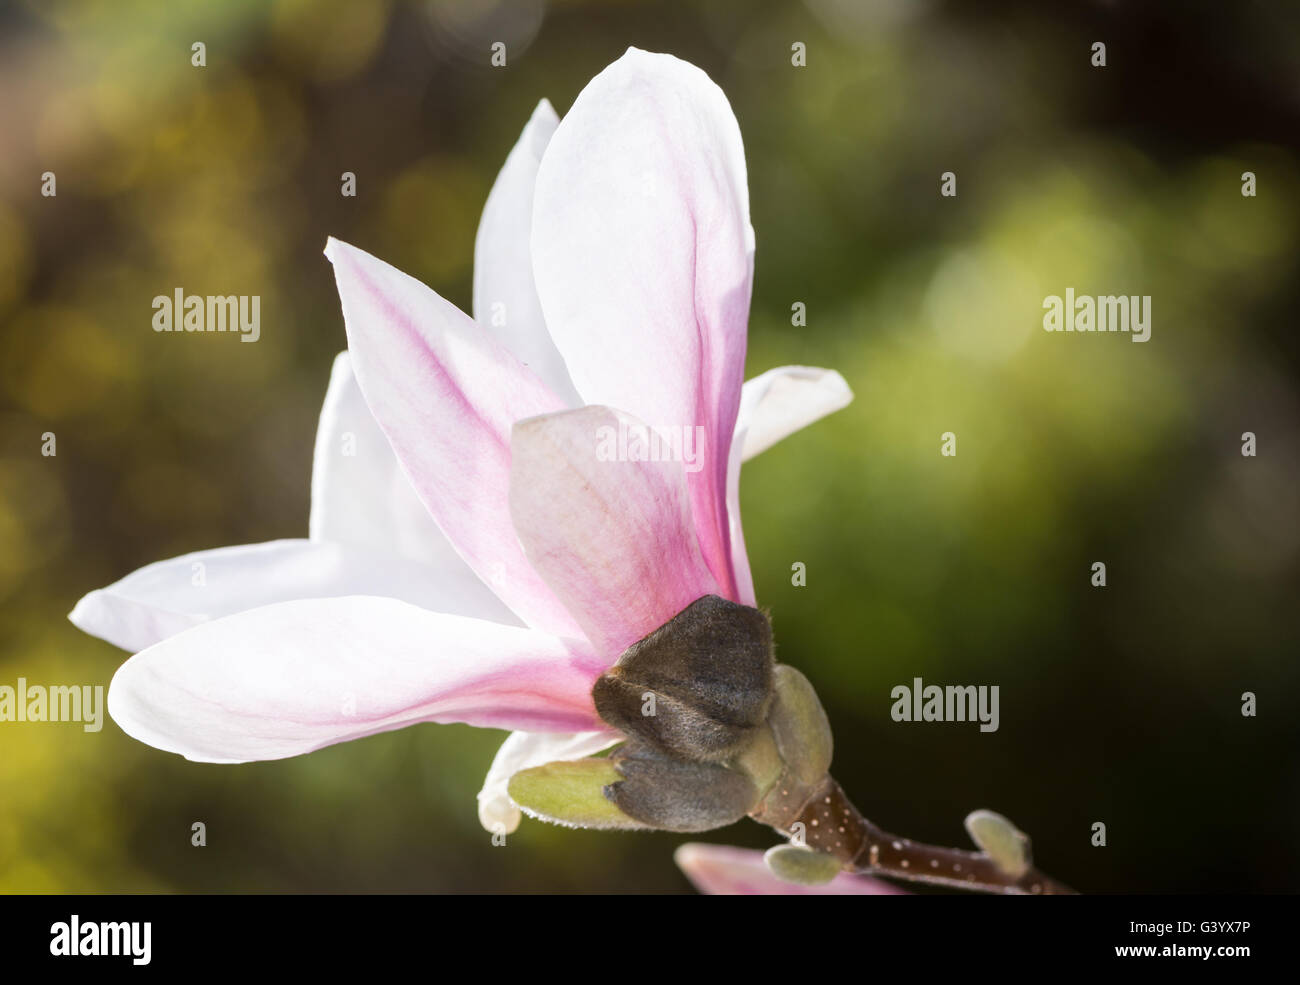 Twig of a flowering magnolia tree with white blossom - Stock Image